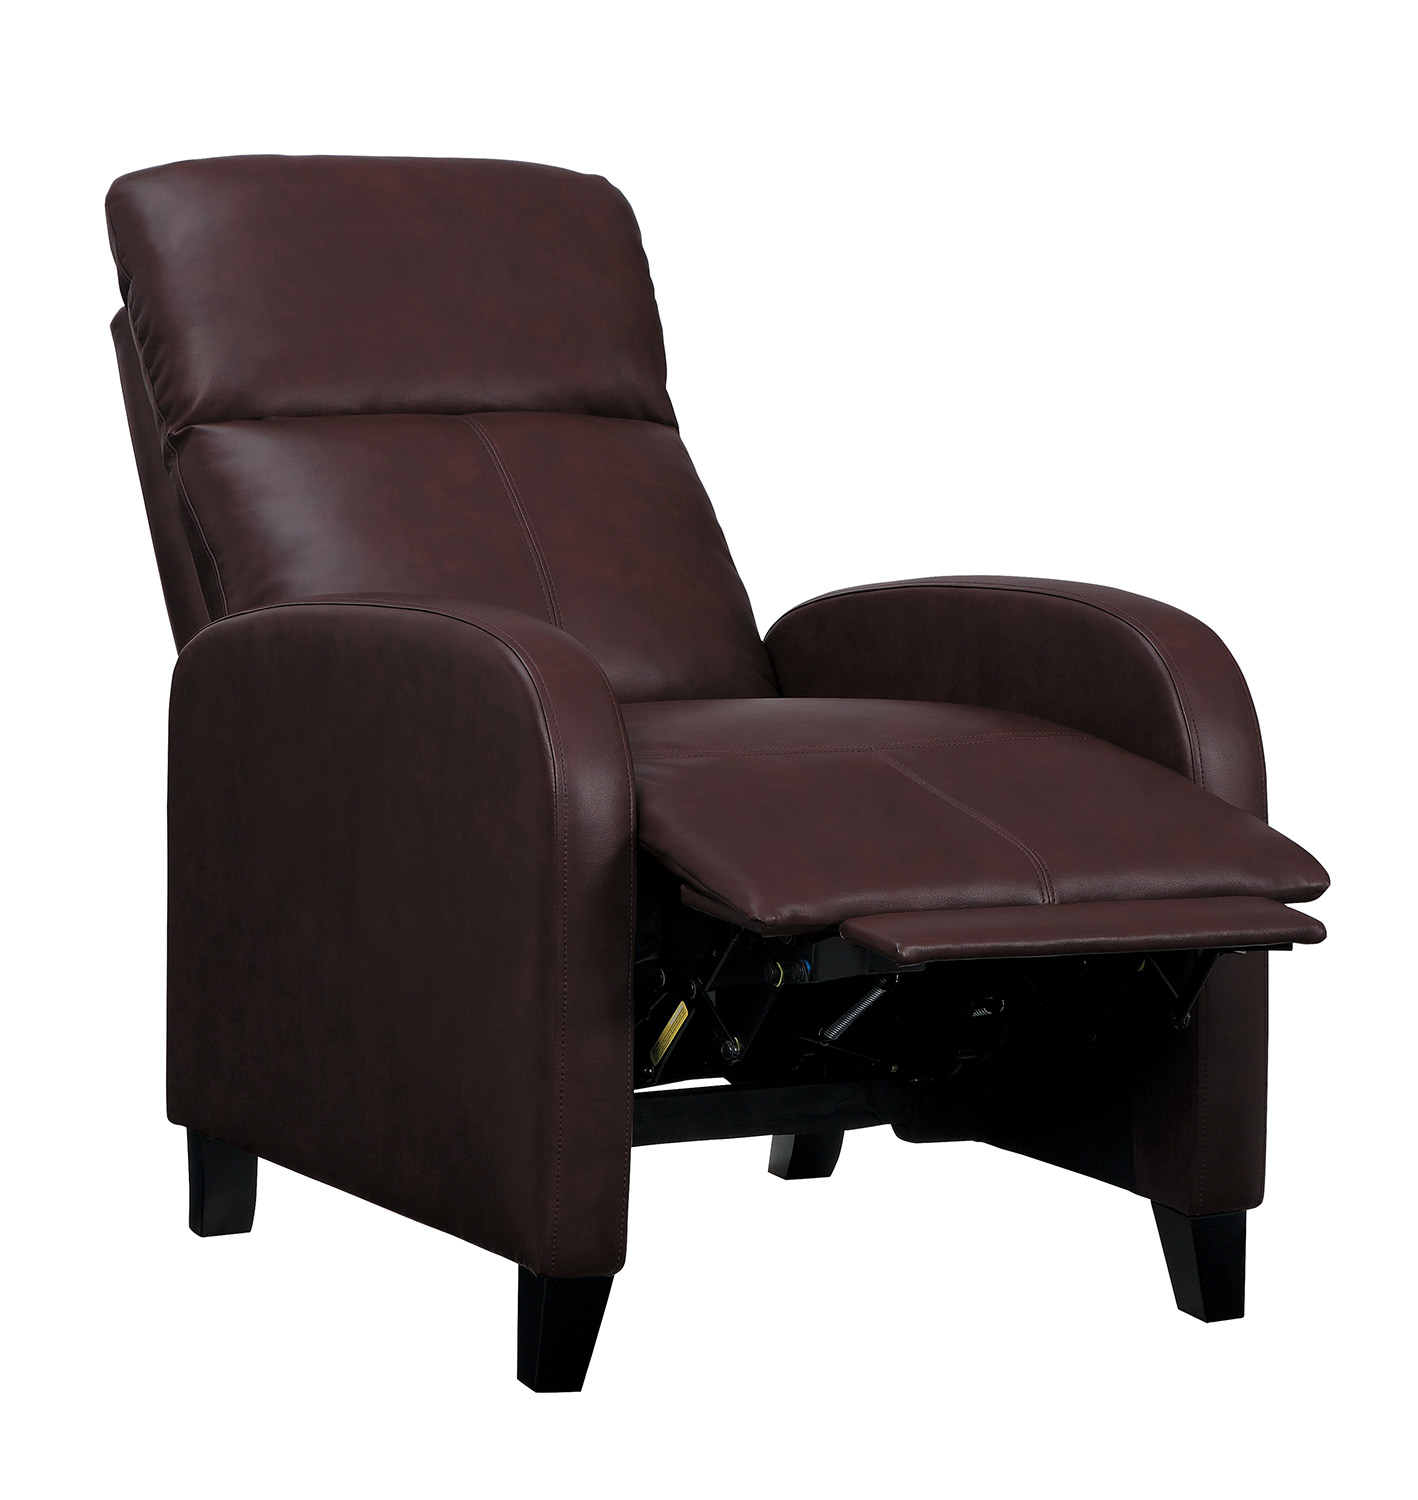 Homelegance Antrim Push Back Reclining Chair - Dark Brown